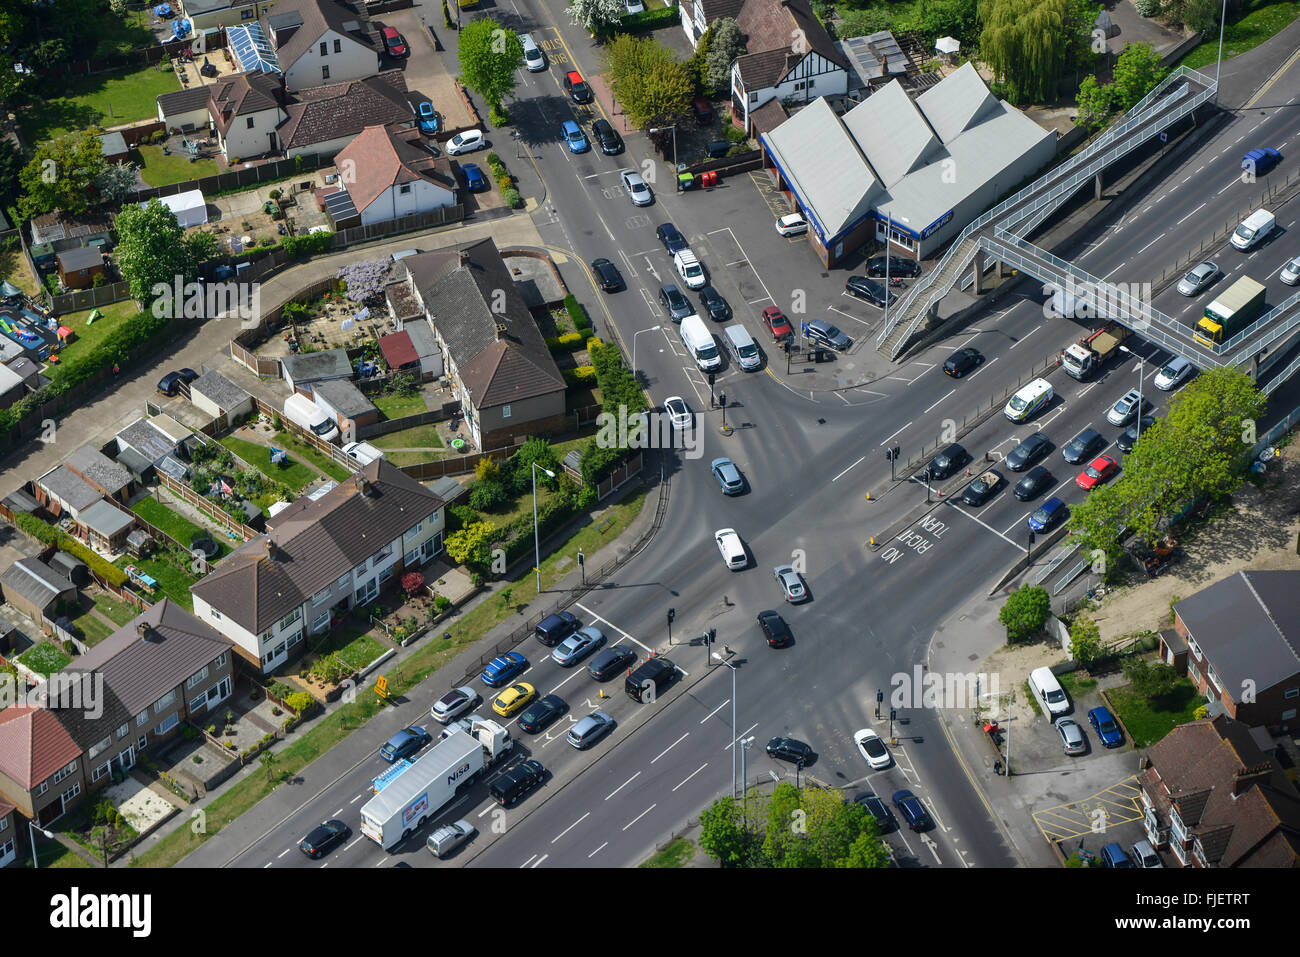 An aerial view of a suburban road junction - Stock Image